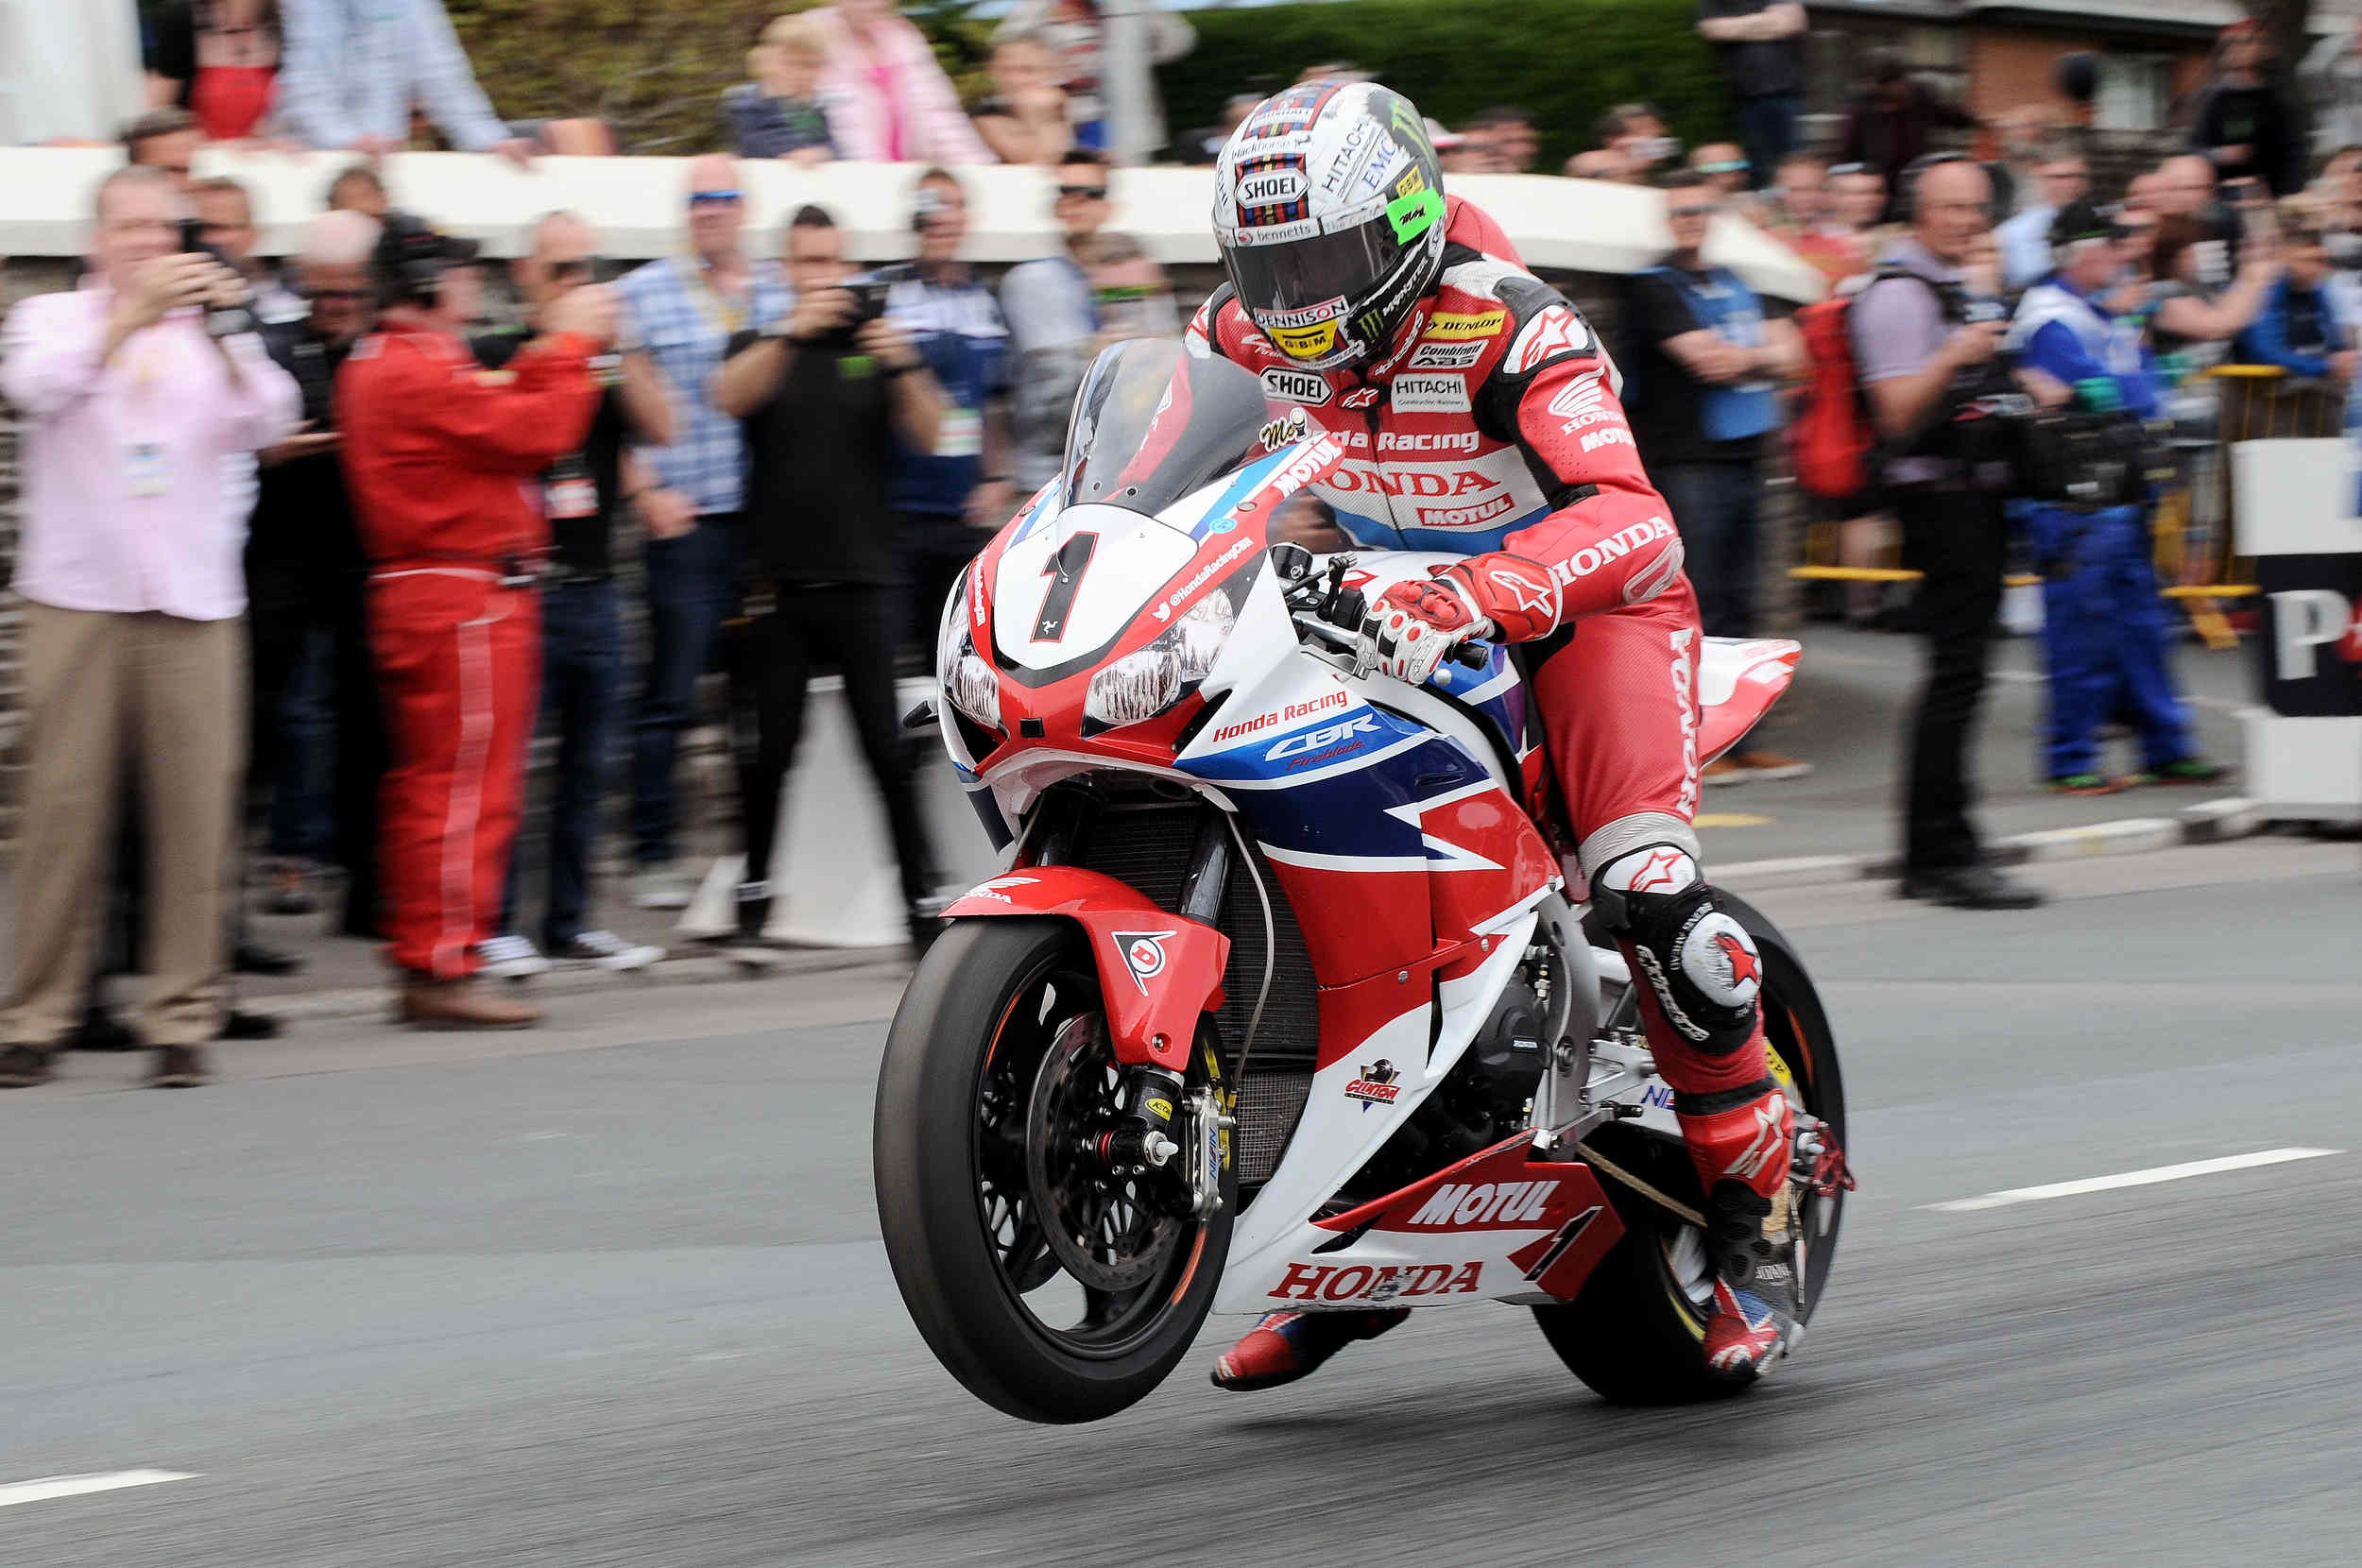 Senior TT, 2015 - John McGuinness